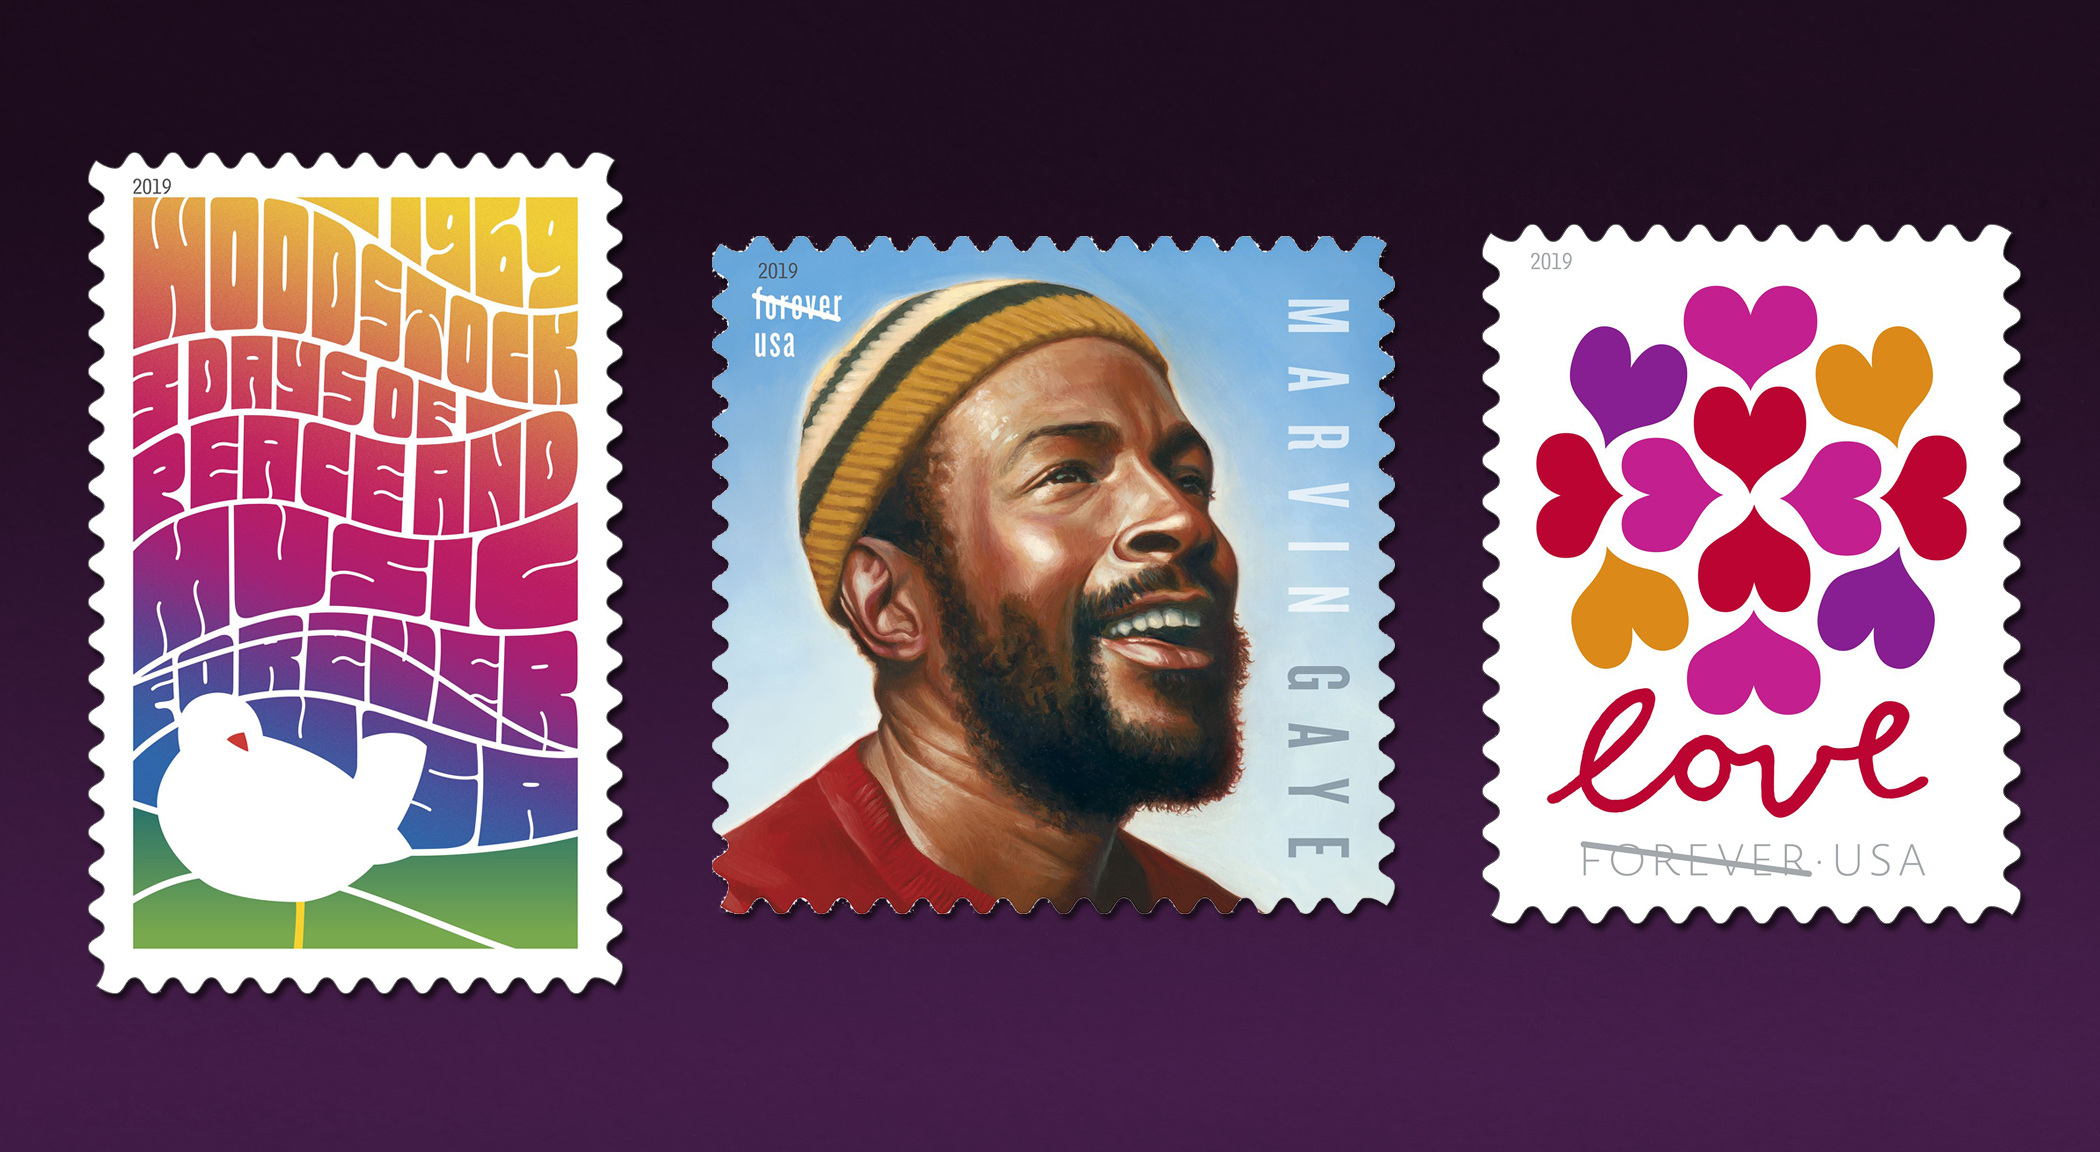 Updated: 2019 US Stamp Program Announced Including Marvin Gaye, Woodstock